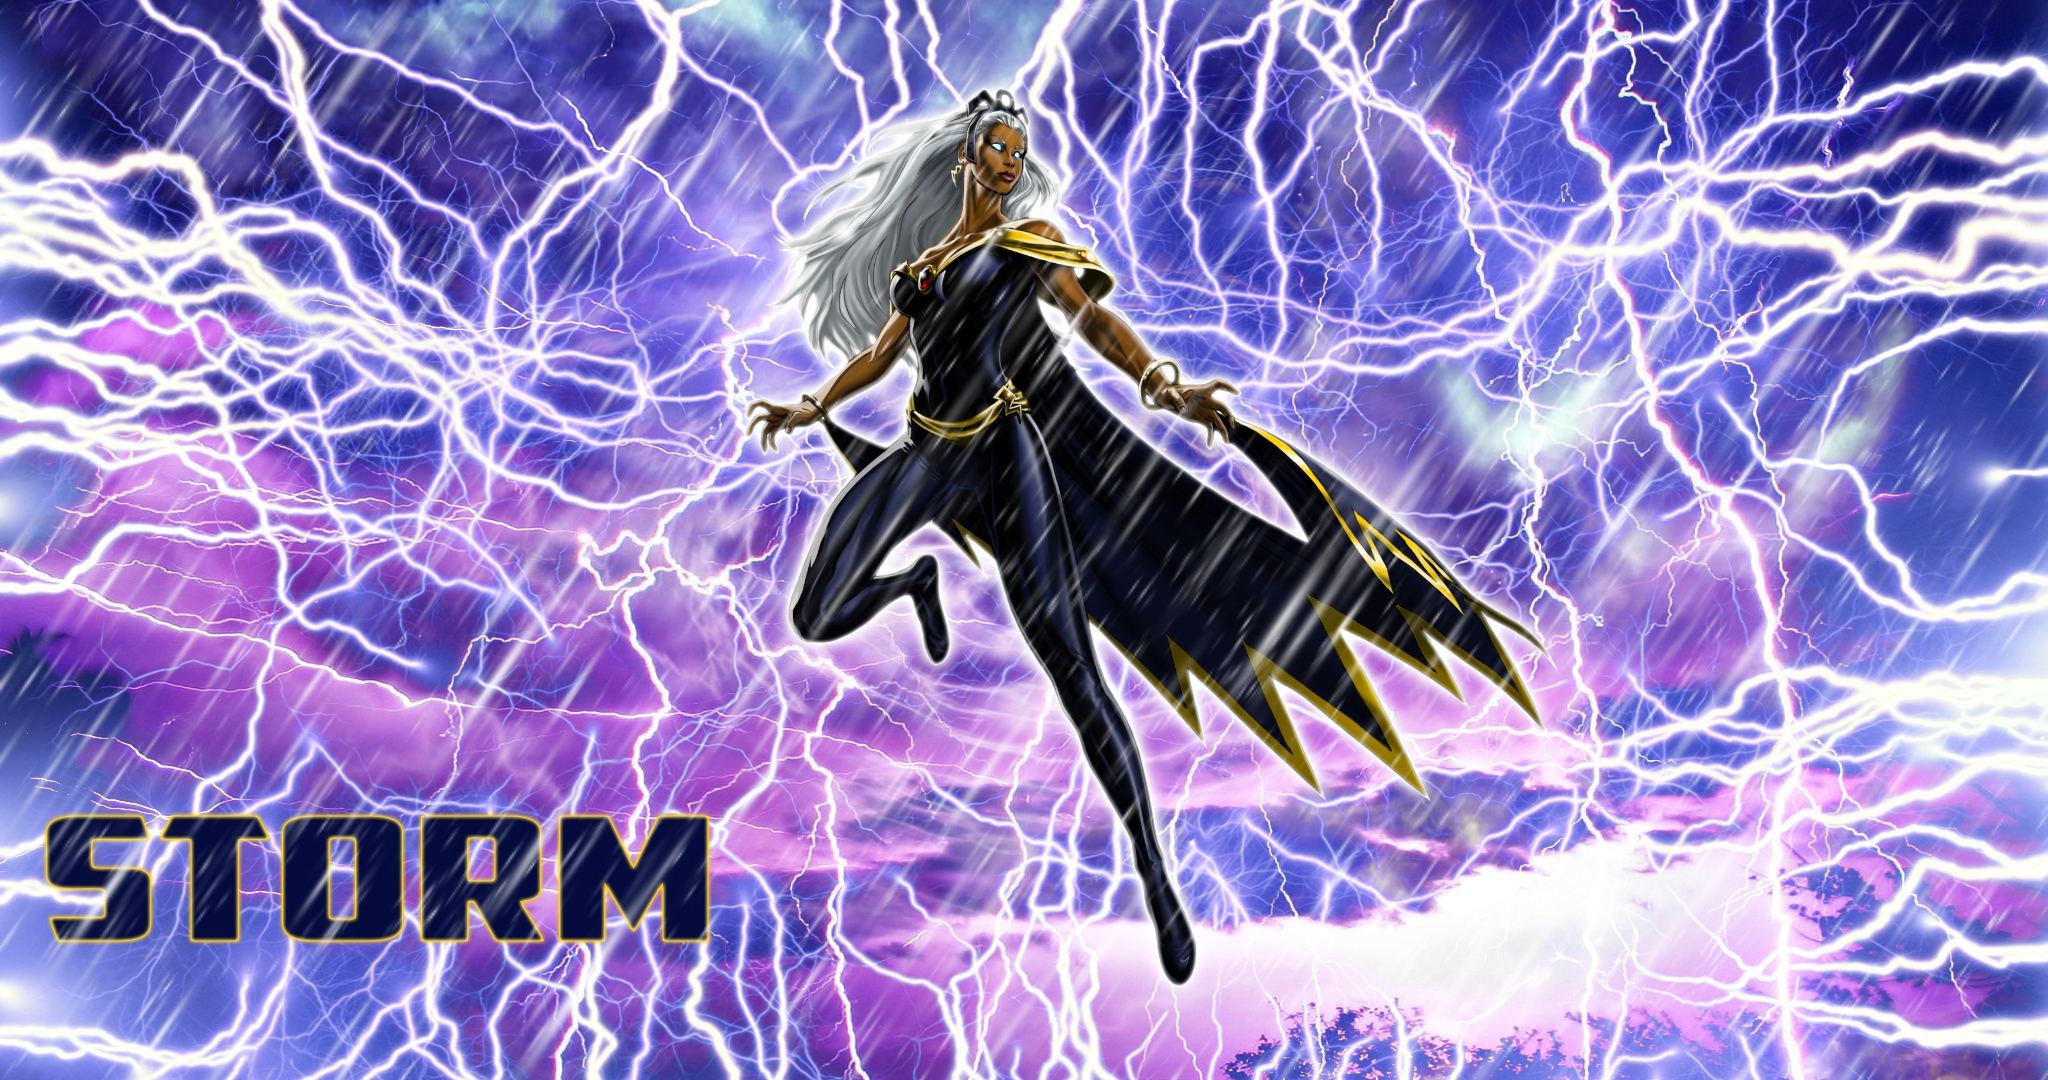 Top Wallpaper Marvel Xmen - 2H5Ryl  Perfect Image Reference_11569.jpg